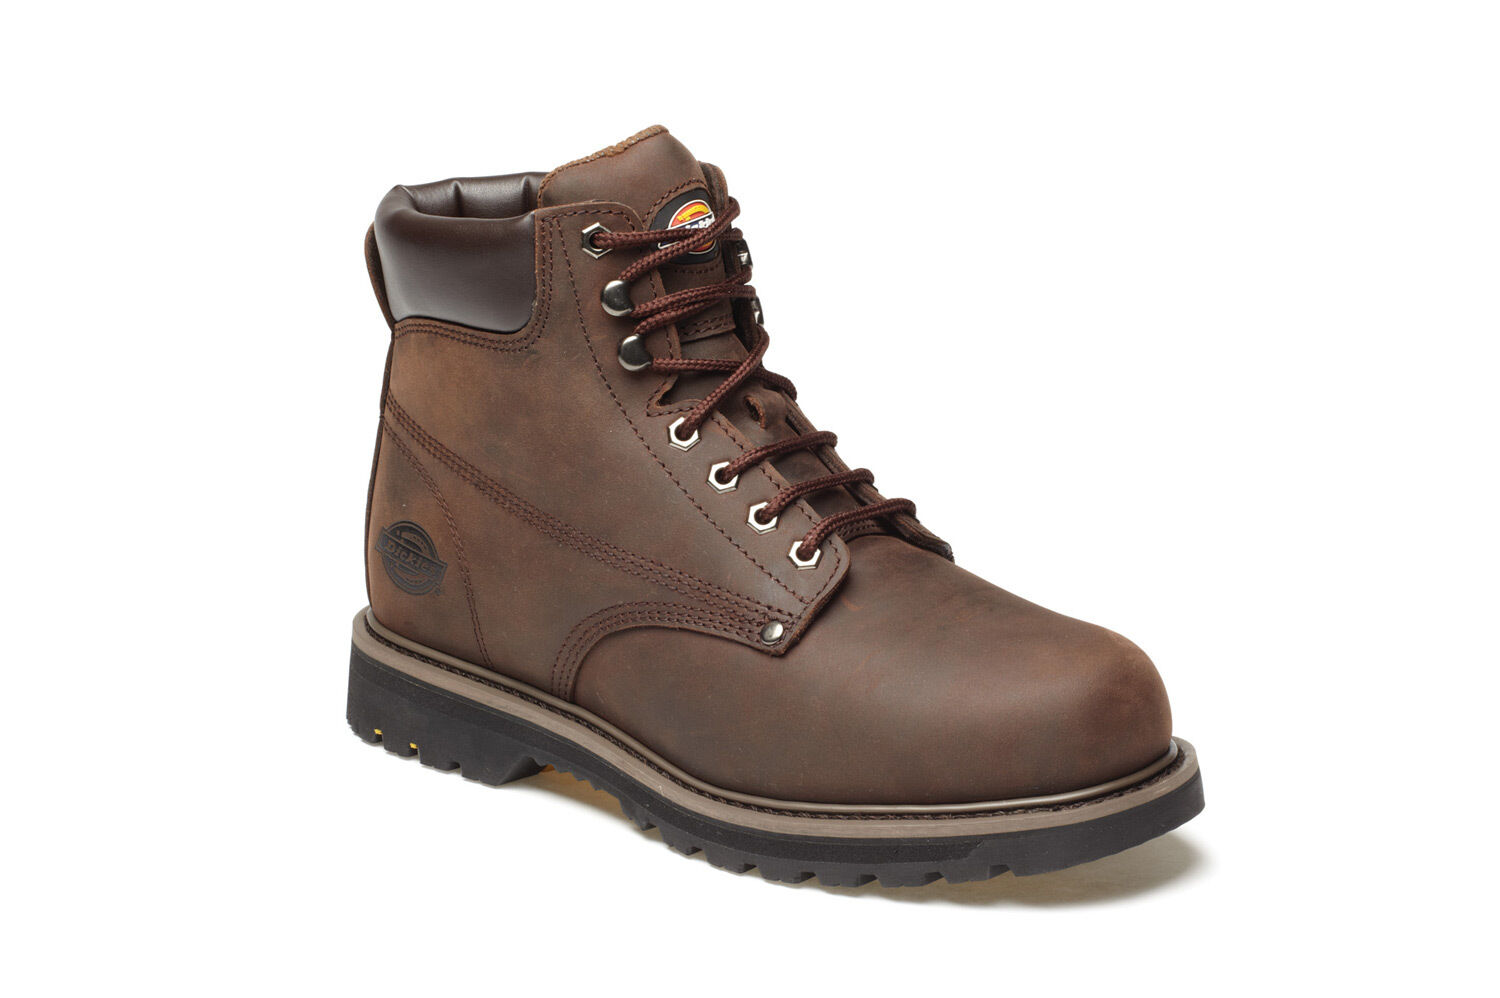 Uomo Dickies Welton non-safety Boot Marrone / Marrone Varie Dimensioni FN23600